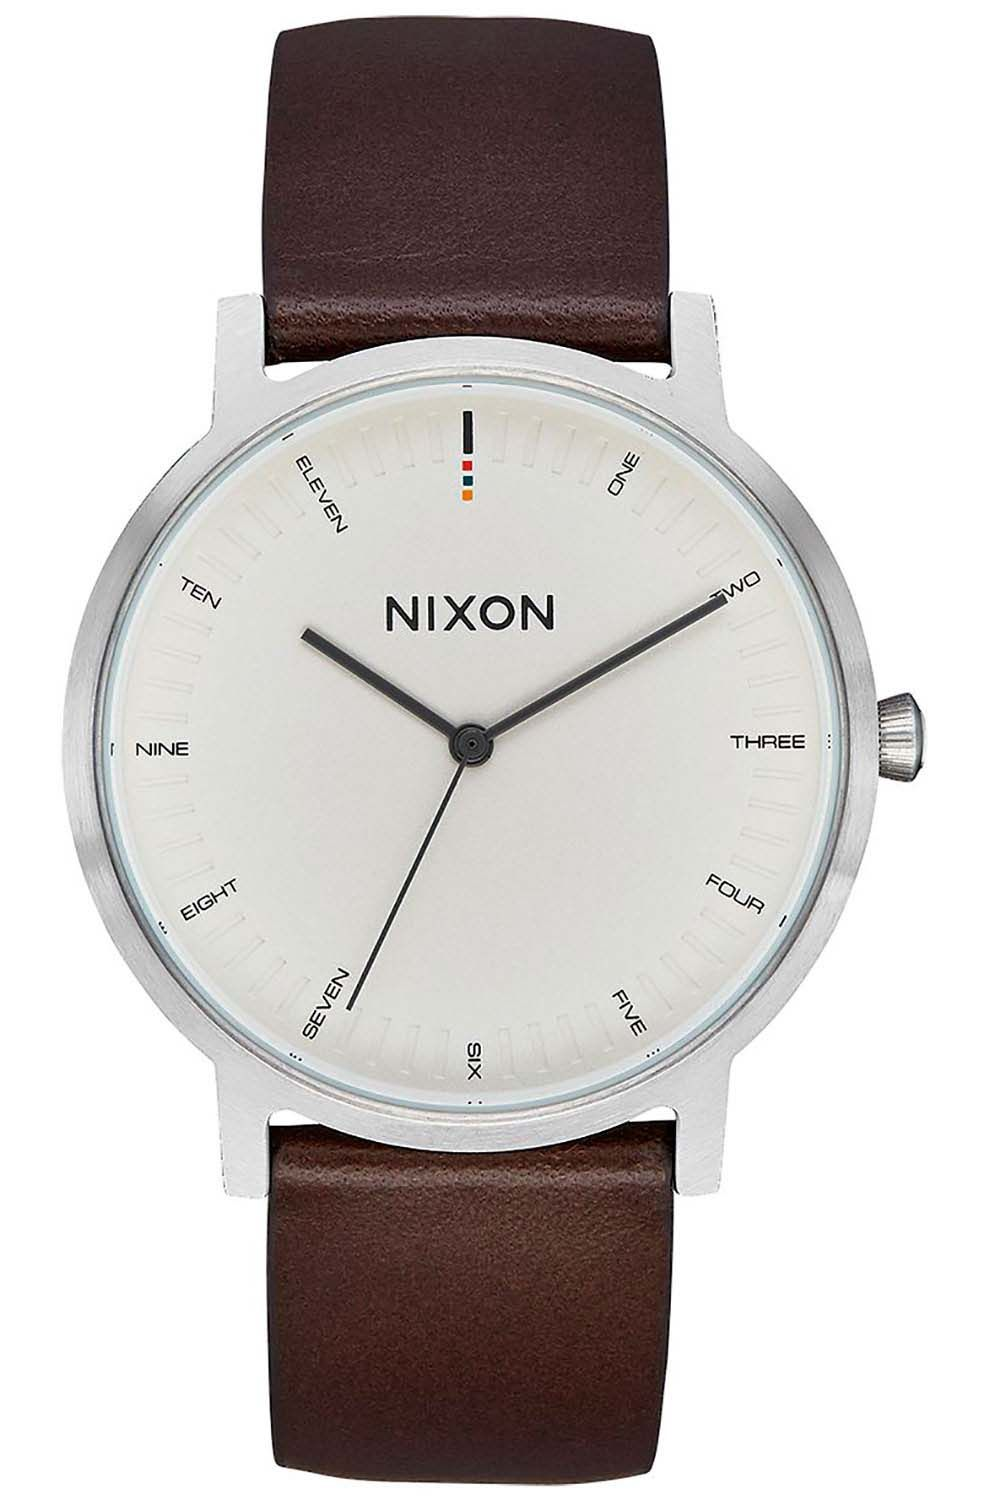 Relogio Nixon PORTER LEATHER Cream